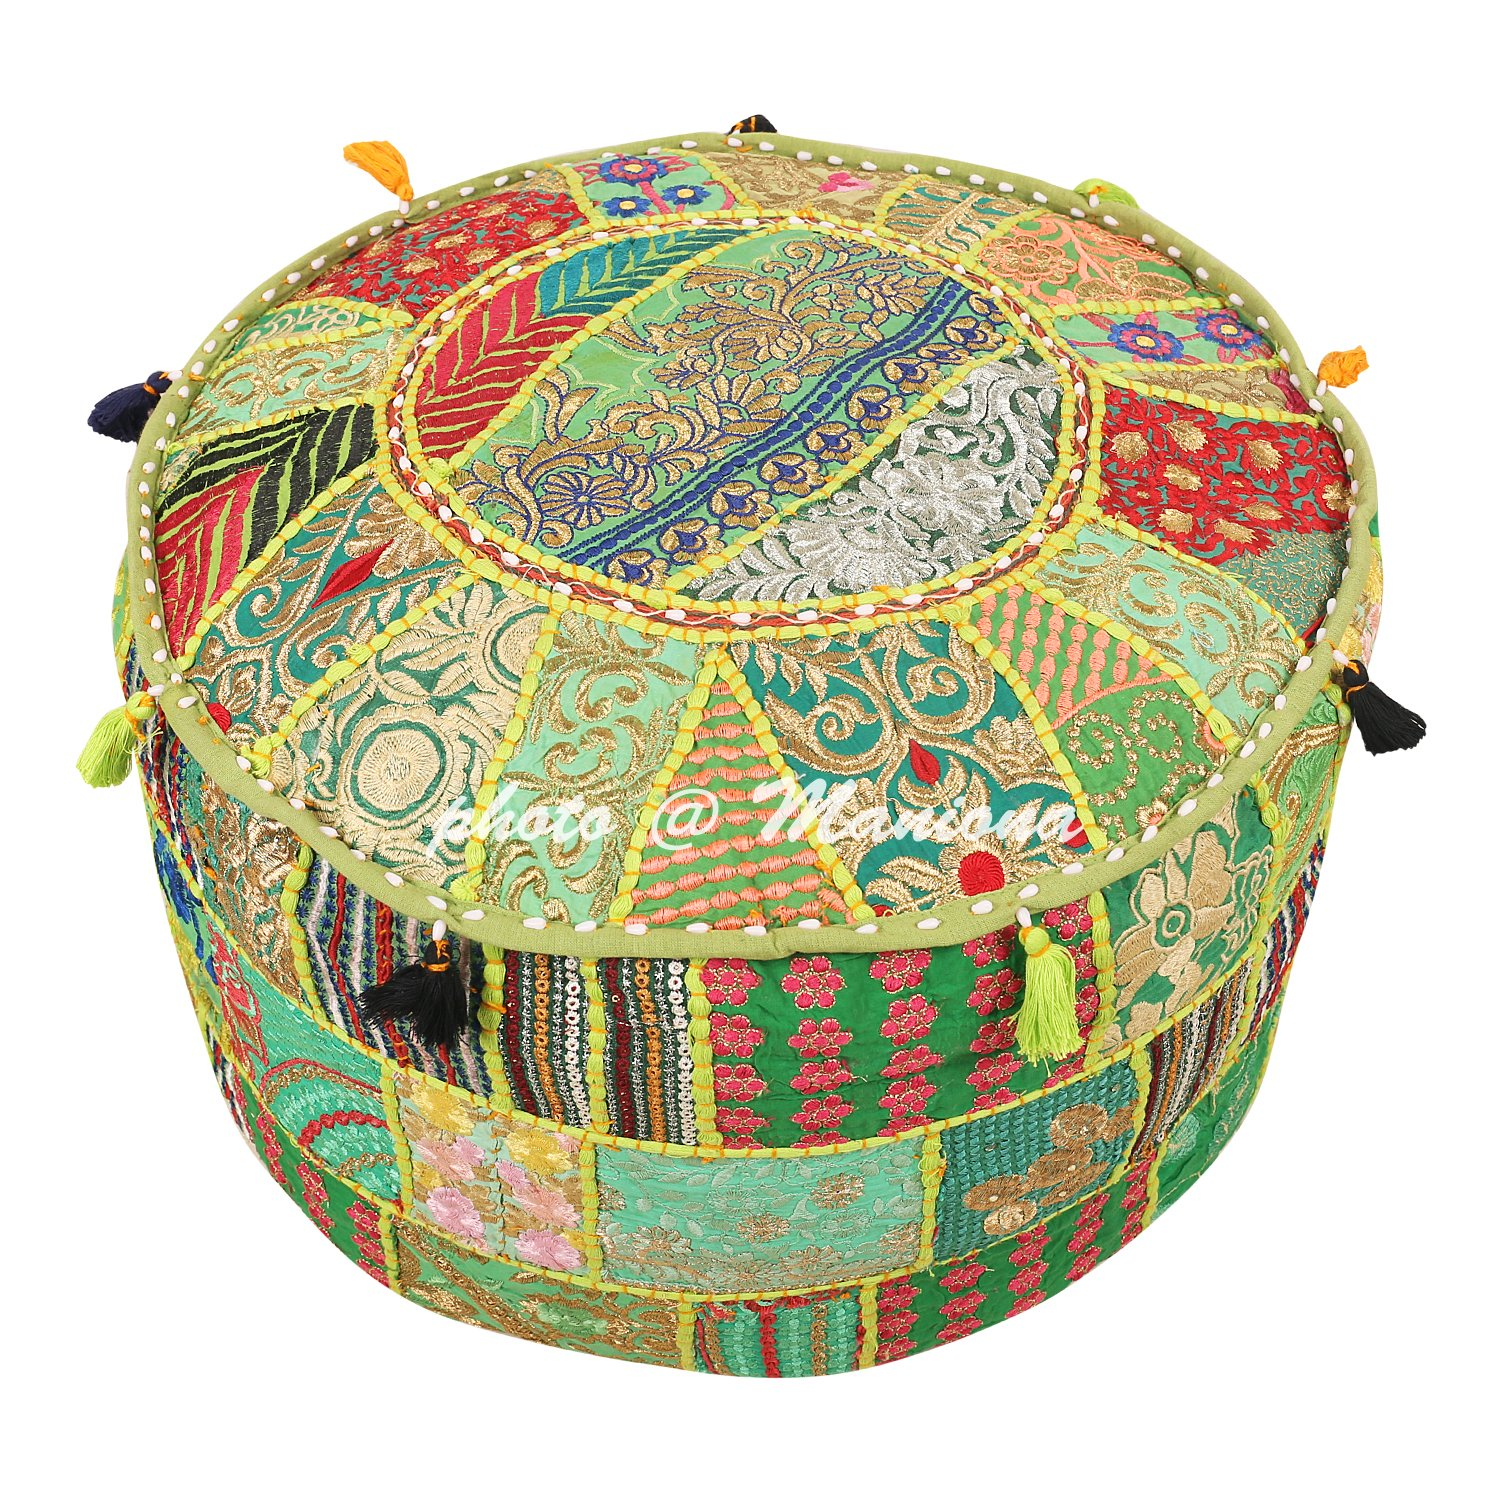 Maniona 22'' Green Indian Patchwork Pouf Cover Indian Living Room Pouf Decorative Ottoman Embroidered Designer Ottoman Home Living Footstool Chair Cover Bohemian Ottoman Pouf Decor by Maniona Crafts